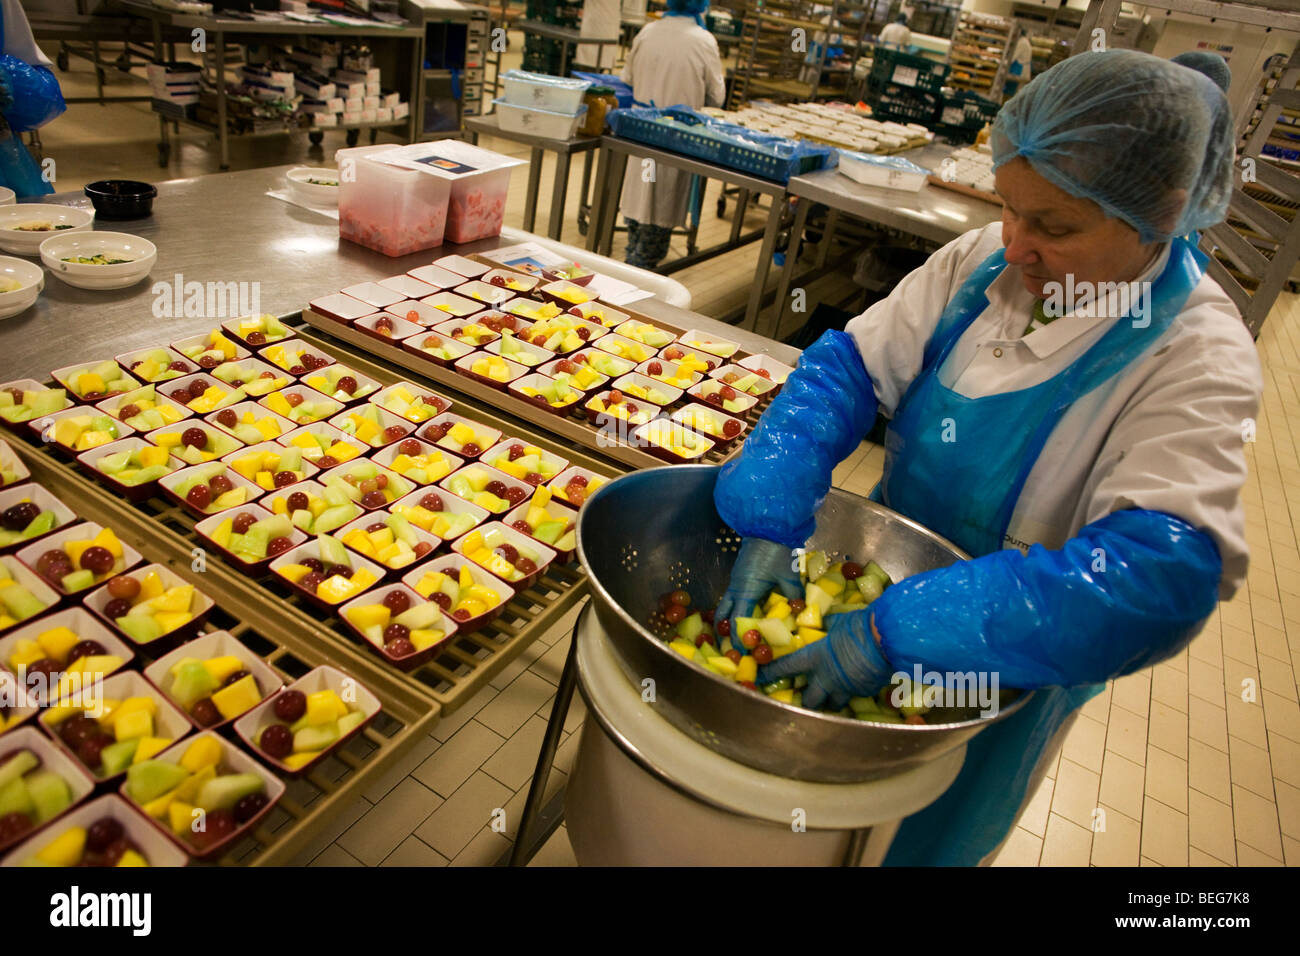 Thomson Inflight Meals >> Airline Catering Stock Photos & Airline Catering Stock Images - Alamy